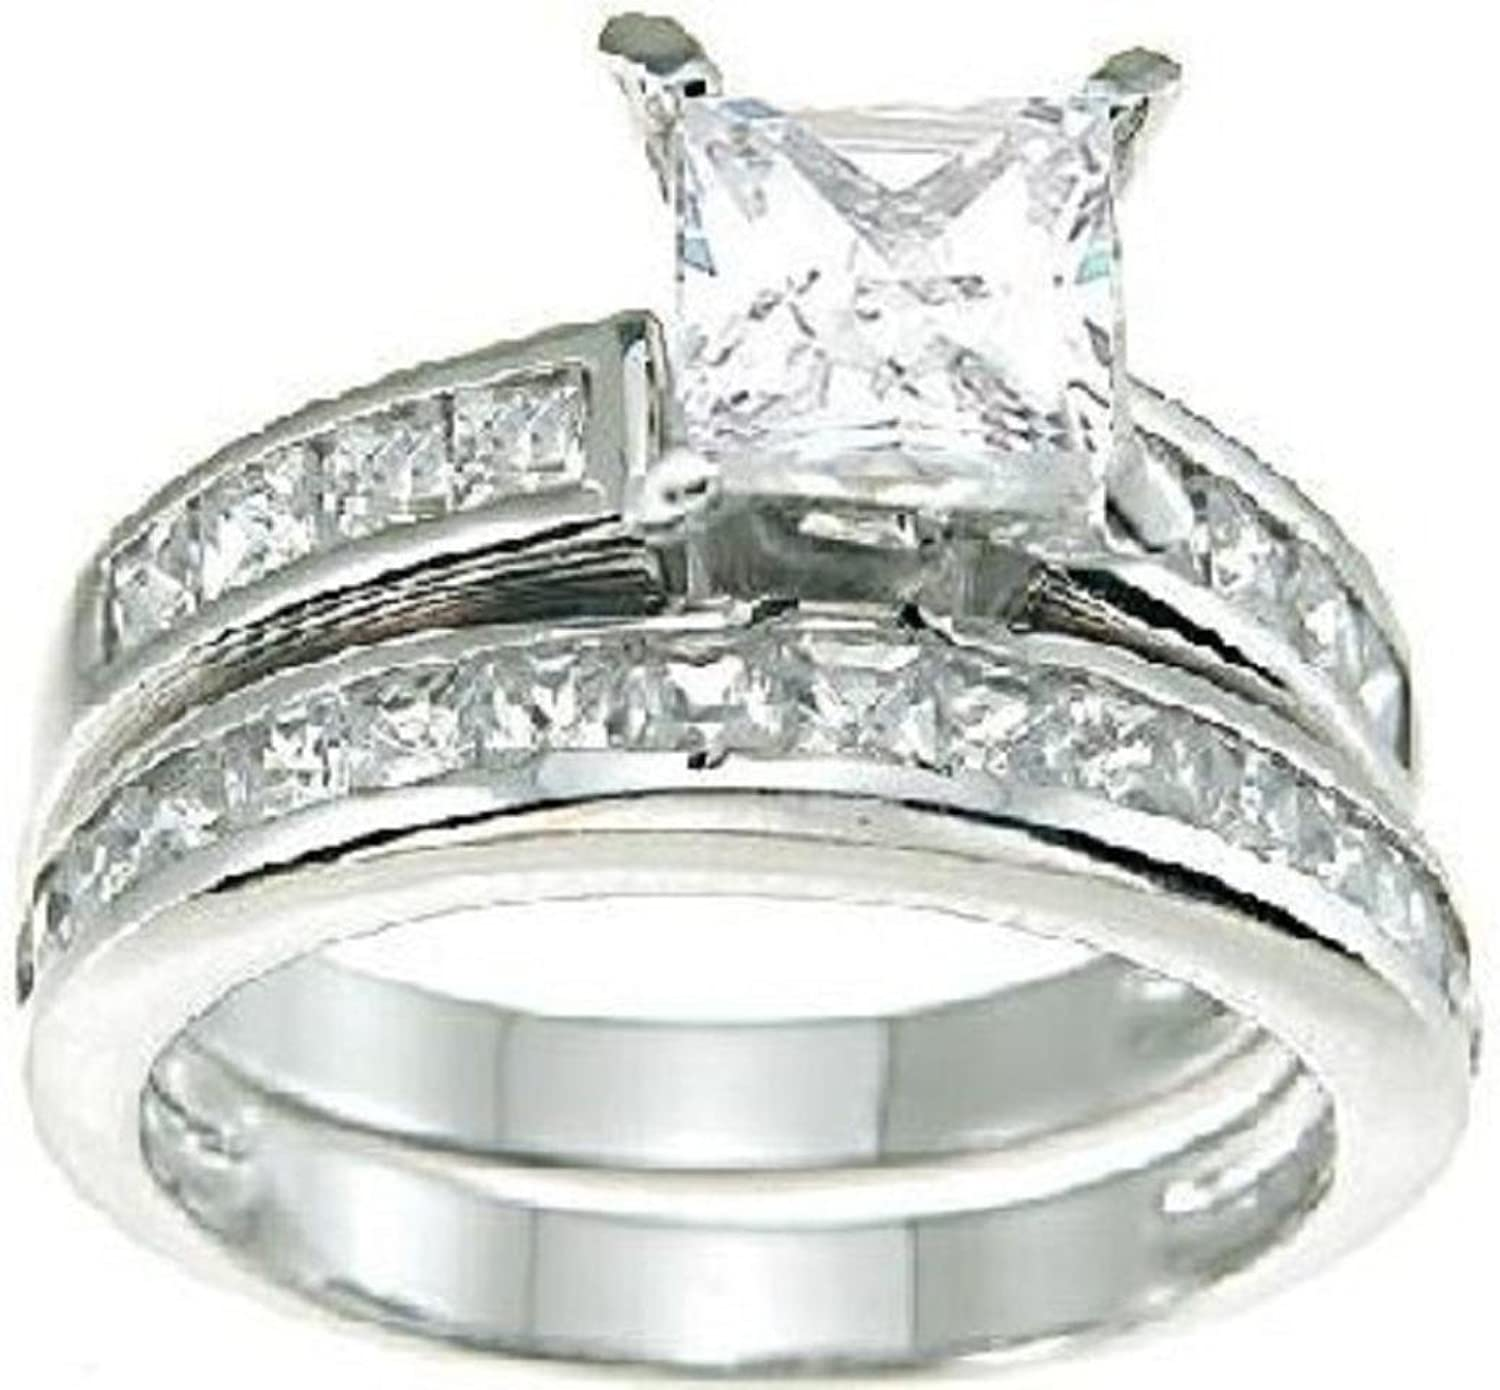 Amazoncom Princess Cut Wedding Band Engagement Ring Set in 925